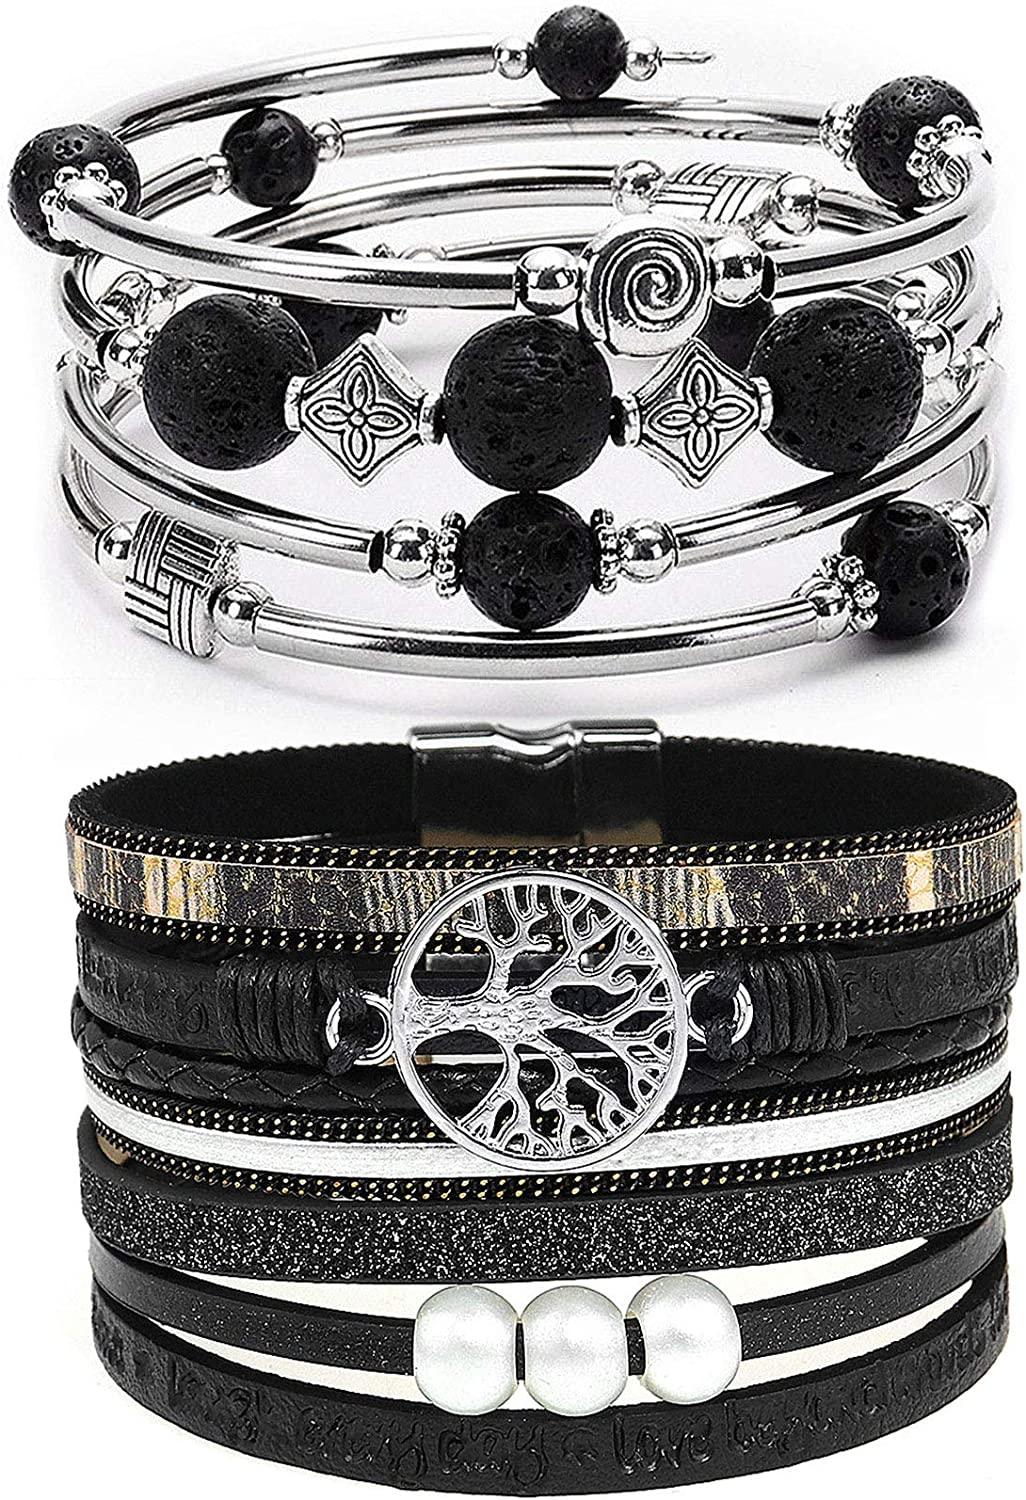 BAOKELAN 2 Pieces Tree of Leather Bracelets 2021 autumn and winter Super beauty product restock quality top! new Life Stackable Wrap